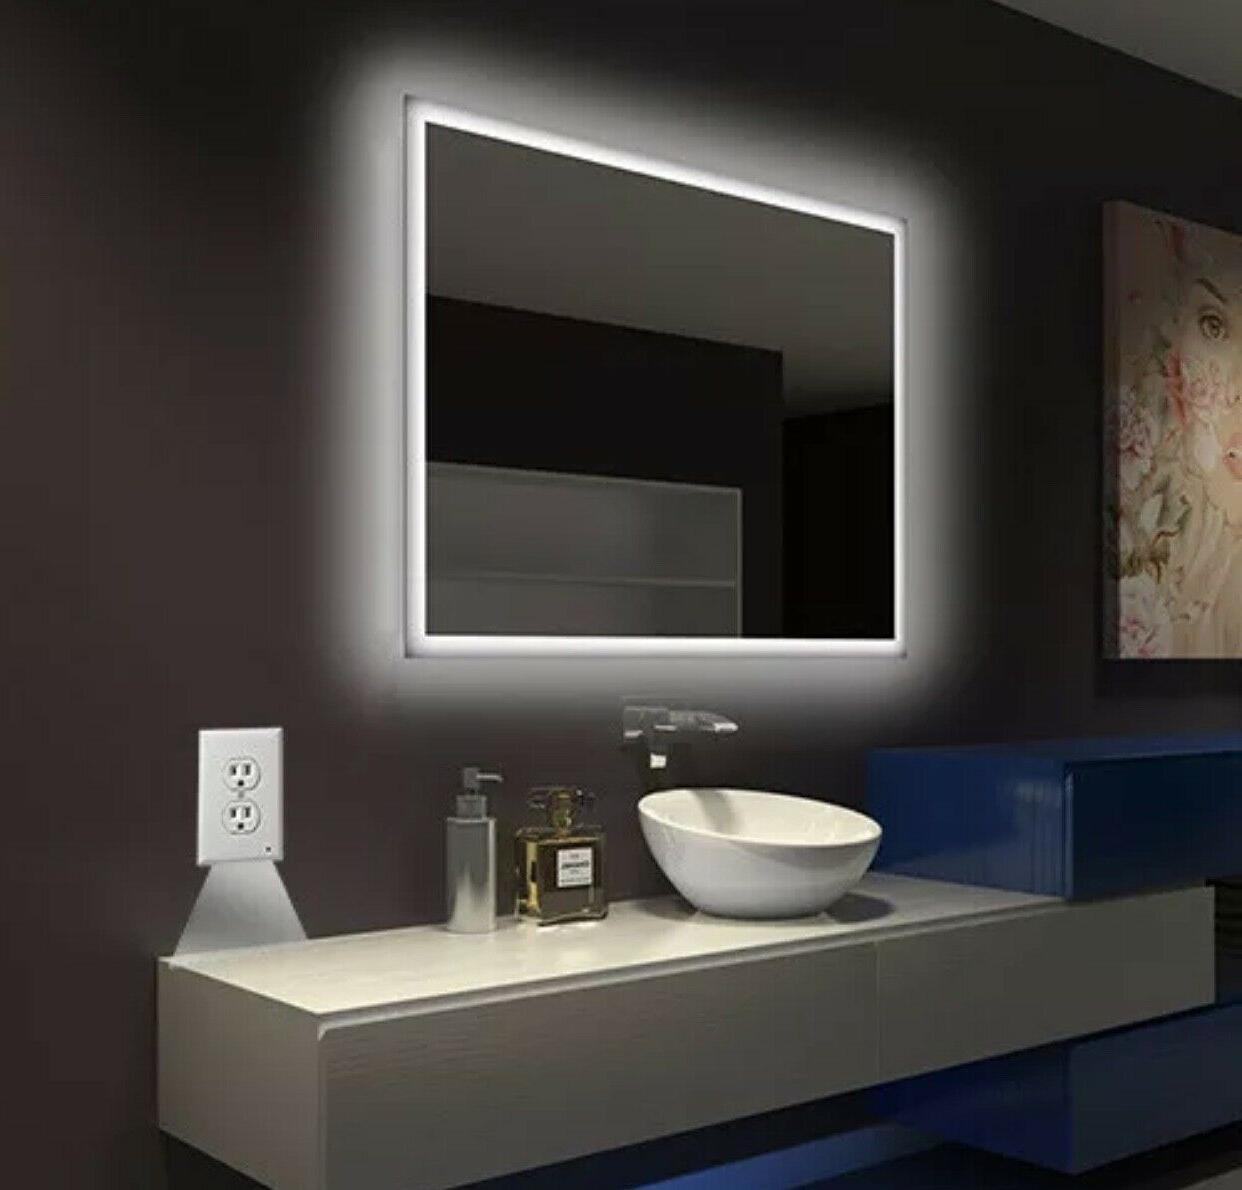 3-Pack Outlet wall plate led night Ambient sensor